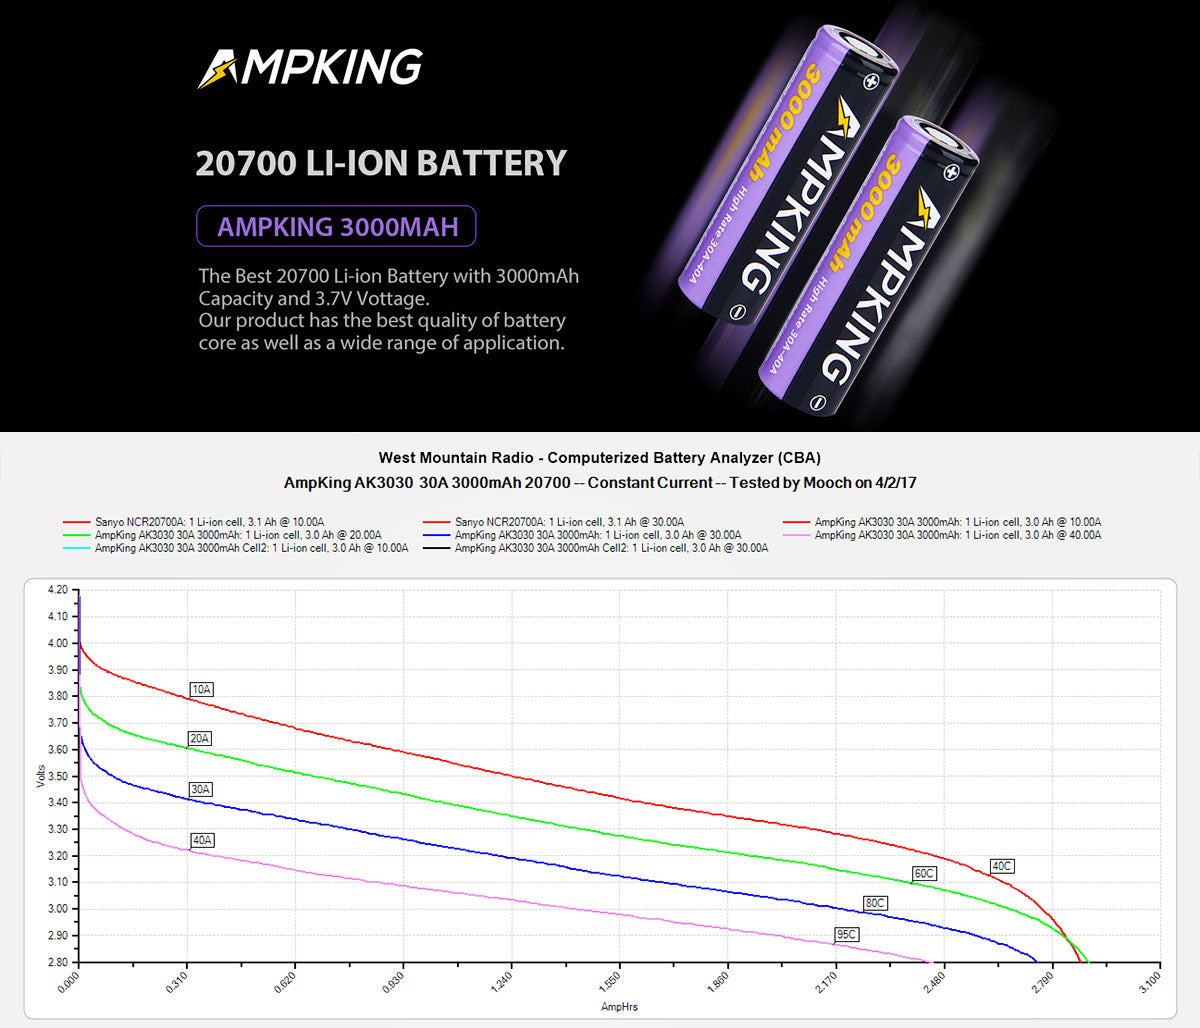 Ampking AK3030 20700 3000mAh Rechargeable Li-ion Battery 40A 3000mAh Reviews